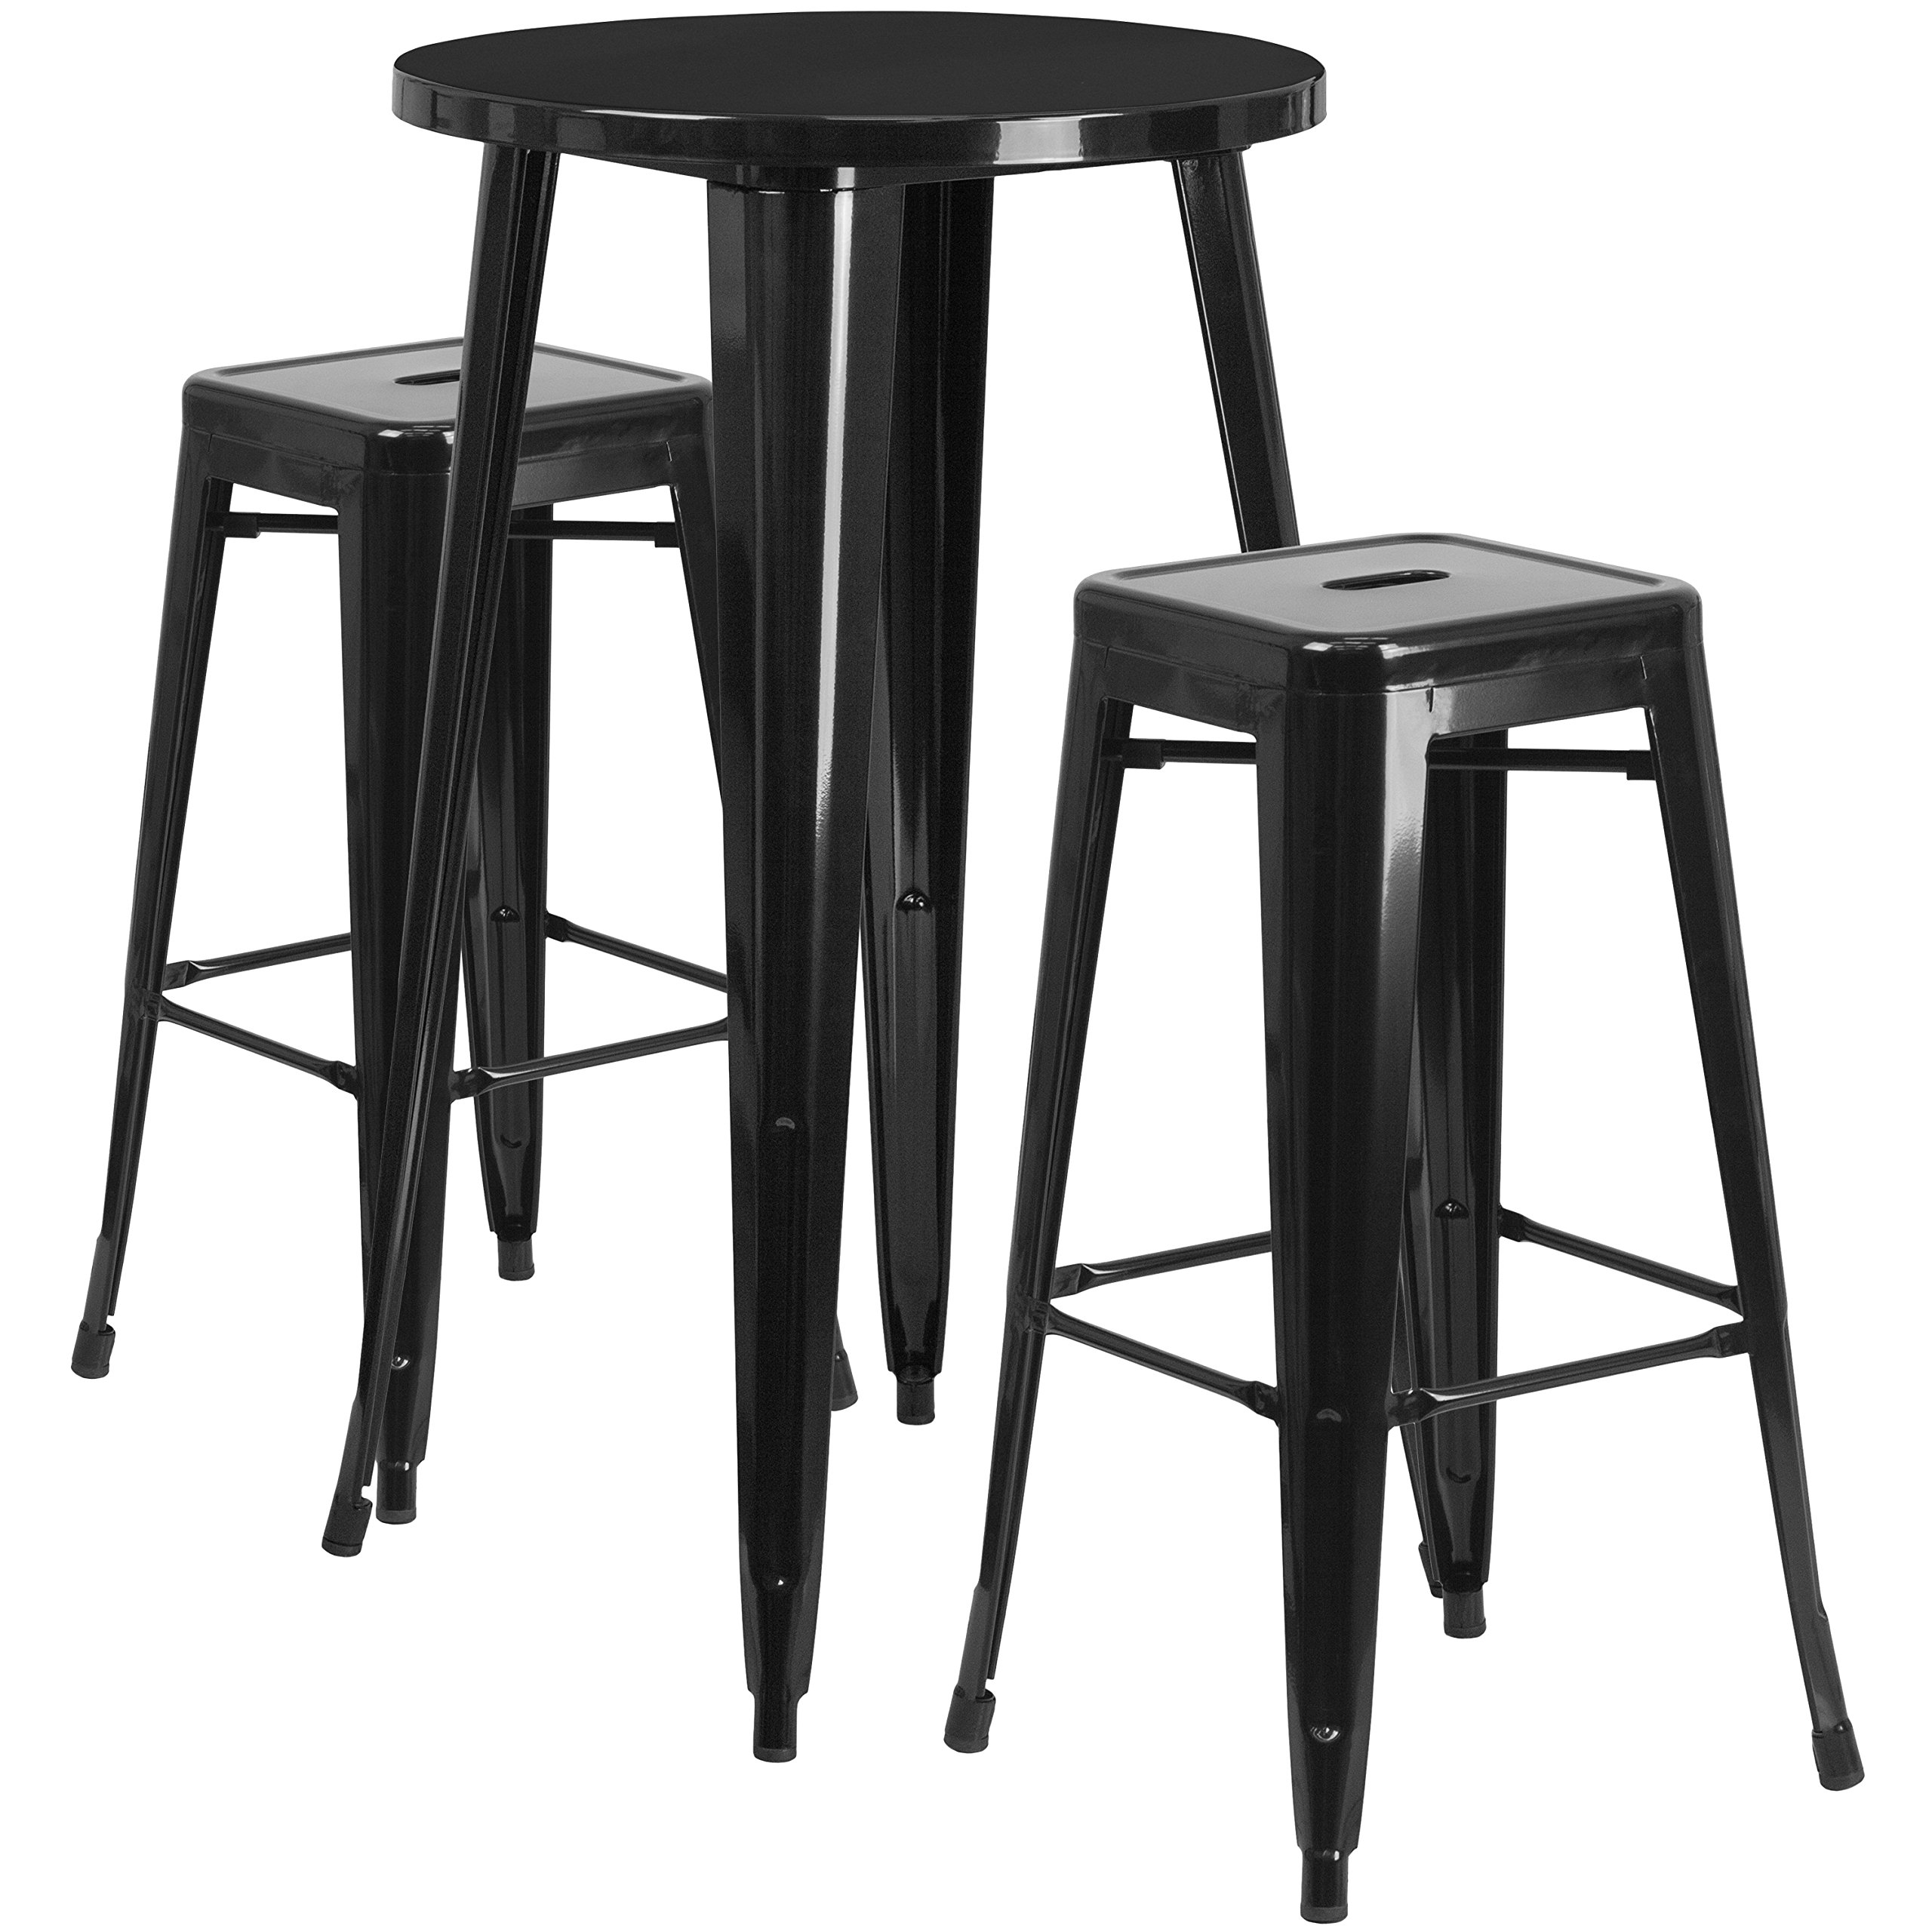 Flash Furniture 24'' Round Black Metal Indoor-Outdoor Bar Table Set with 2 Square Seat Backless Stools by Flash Furniture (Image #1)